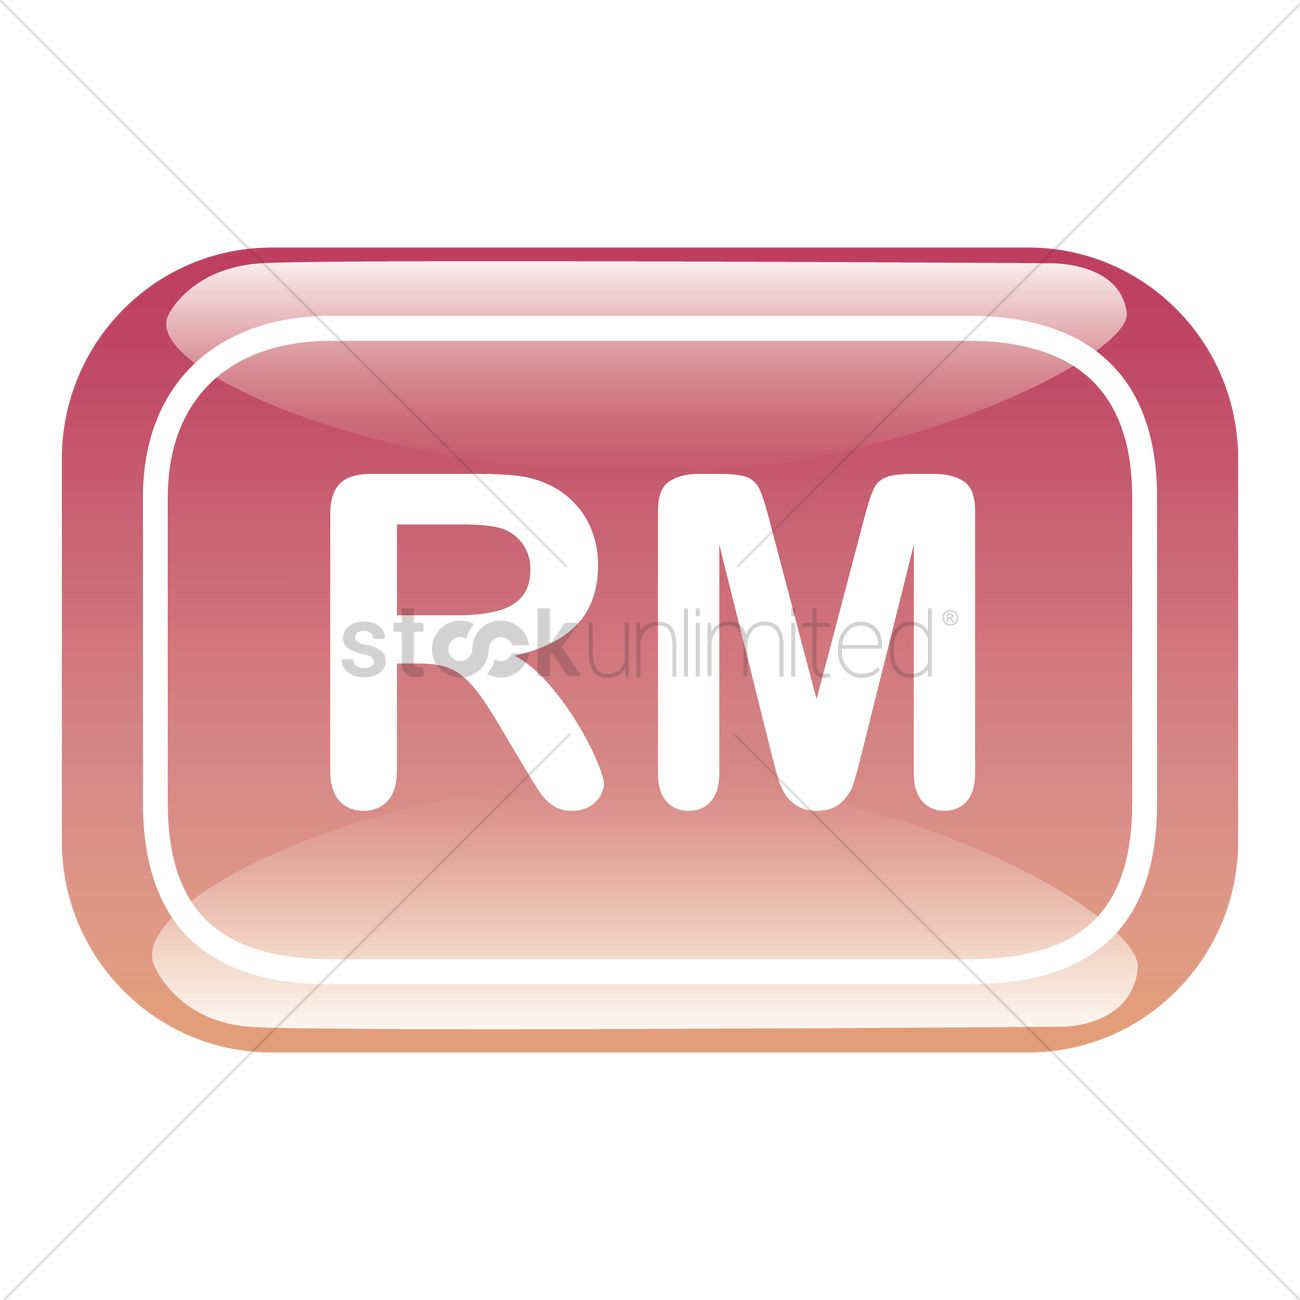 Malaysia ringgit currency symbol vector image 1306061 stockunlimited malaysia ringgit currency symbol vector graphic buycottarizona Image collections